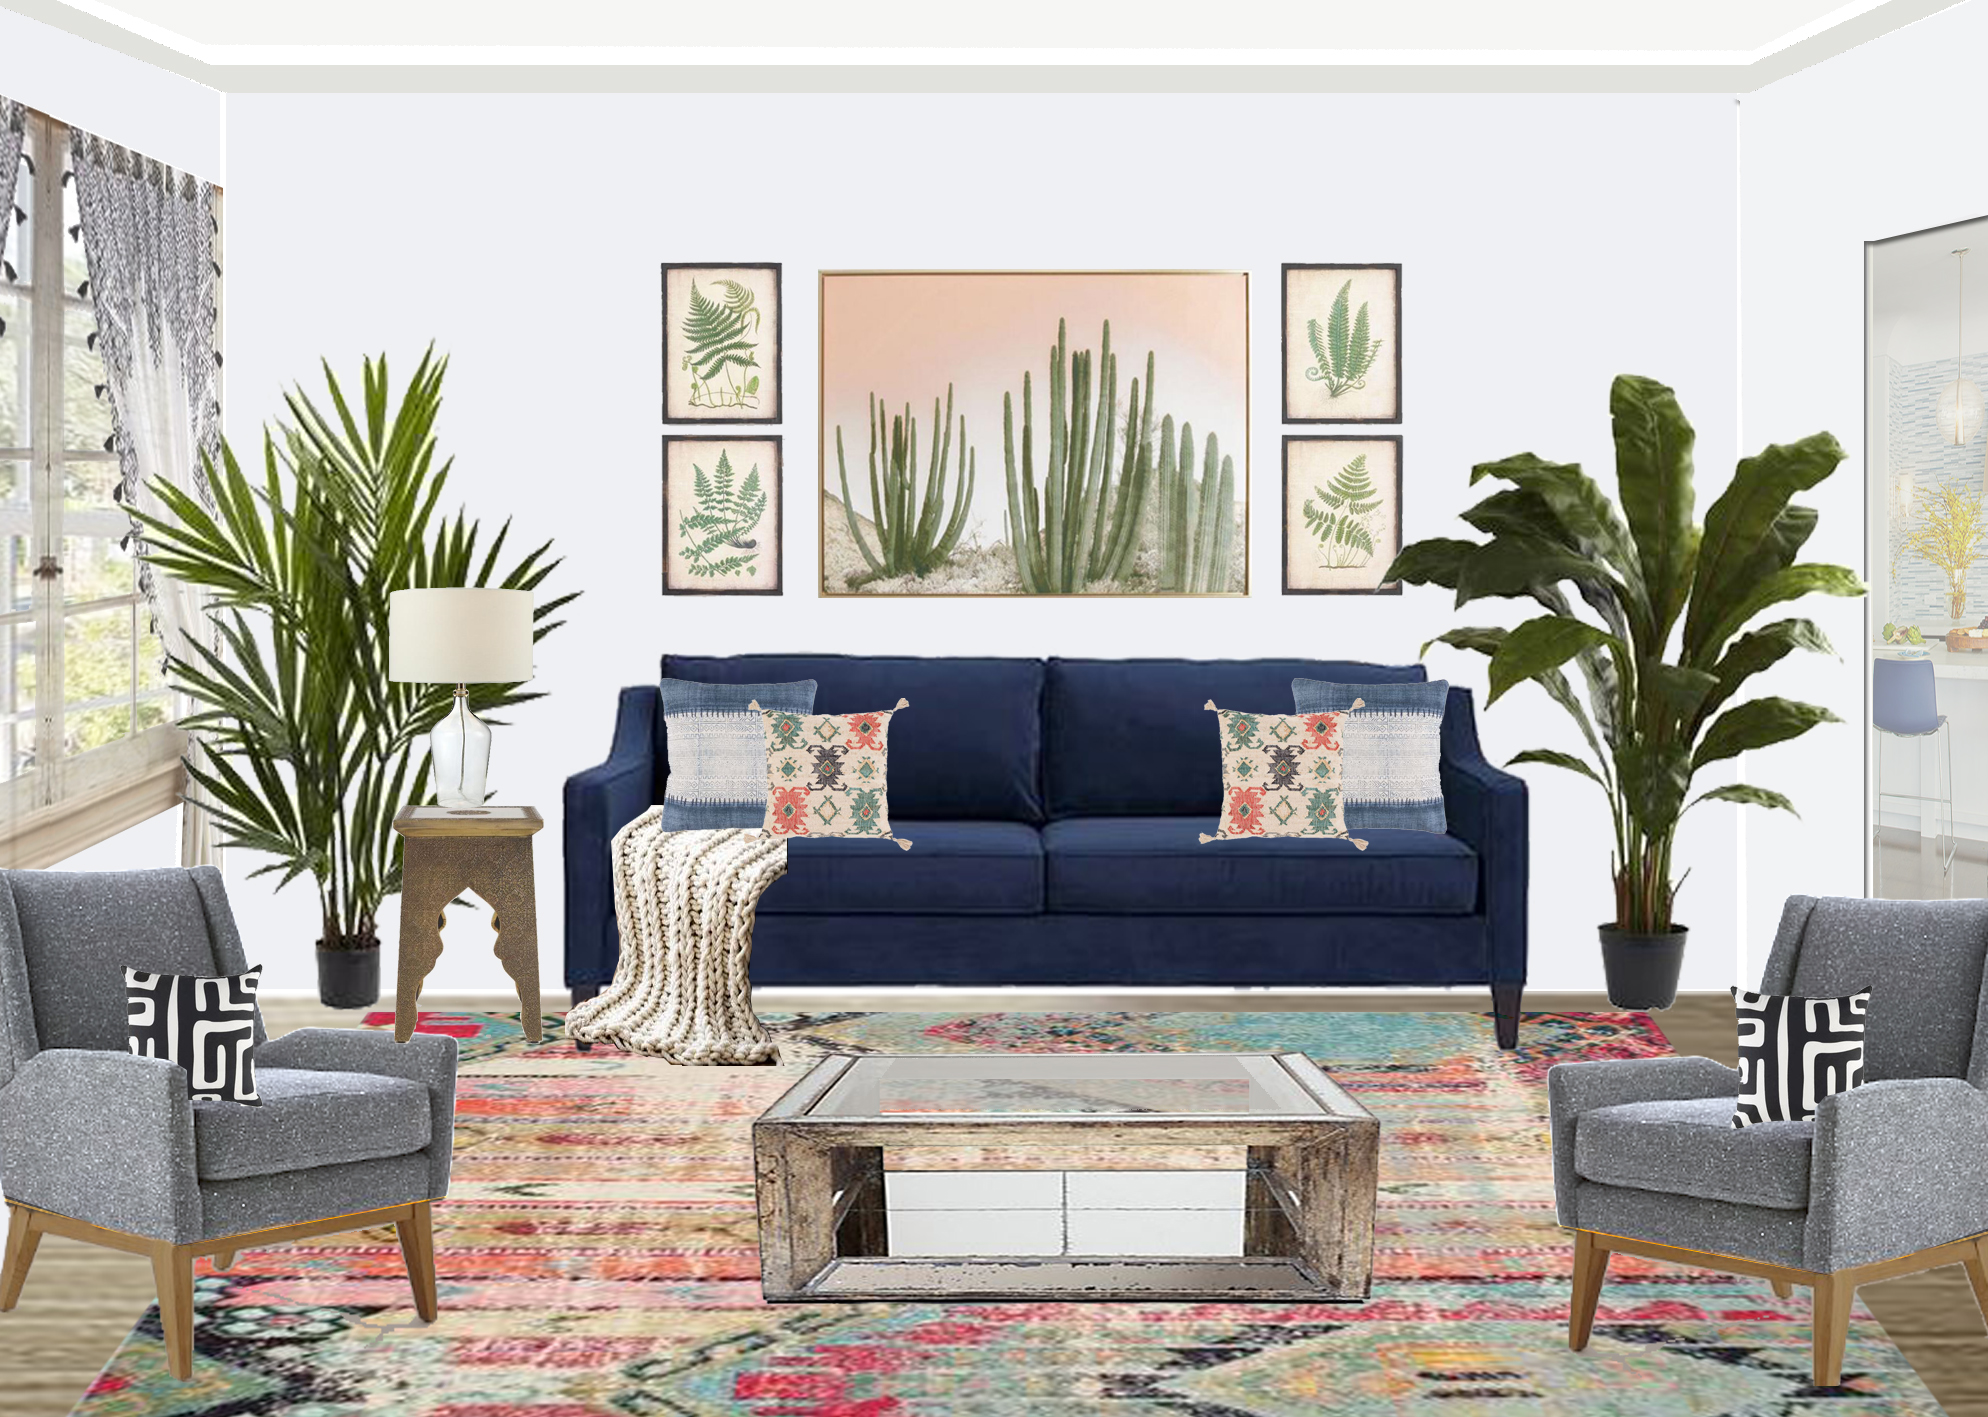 Interior Design, Product Finds, Home Styling Advice